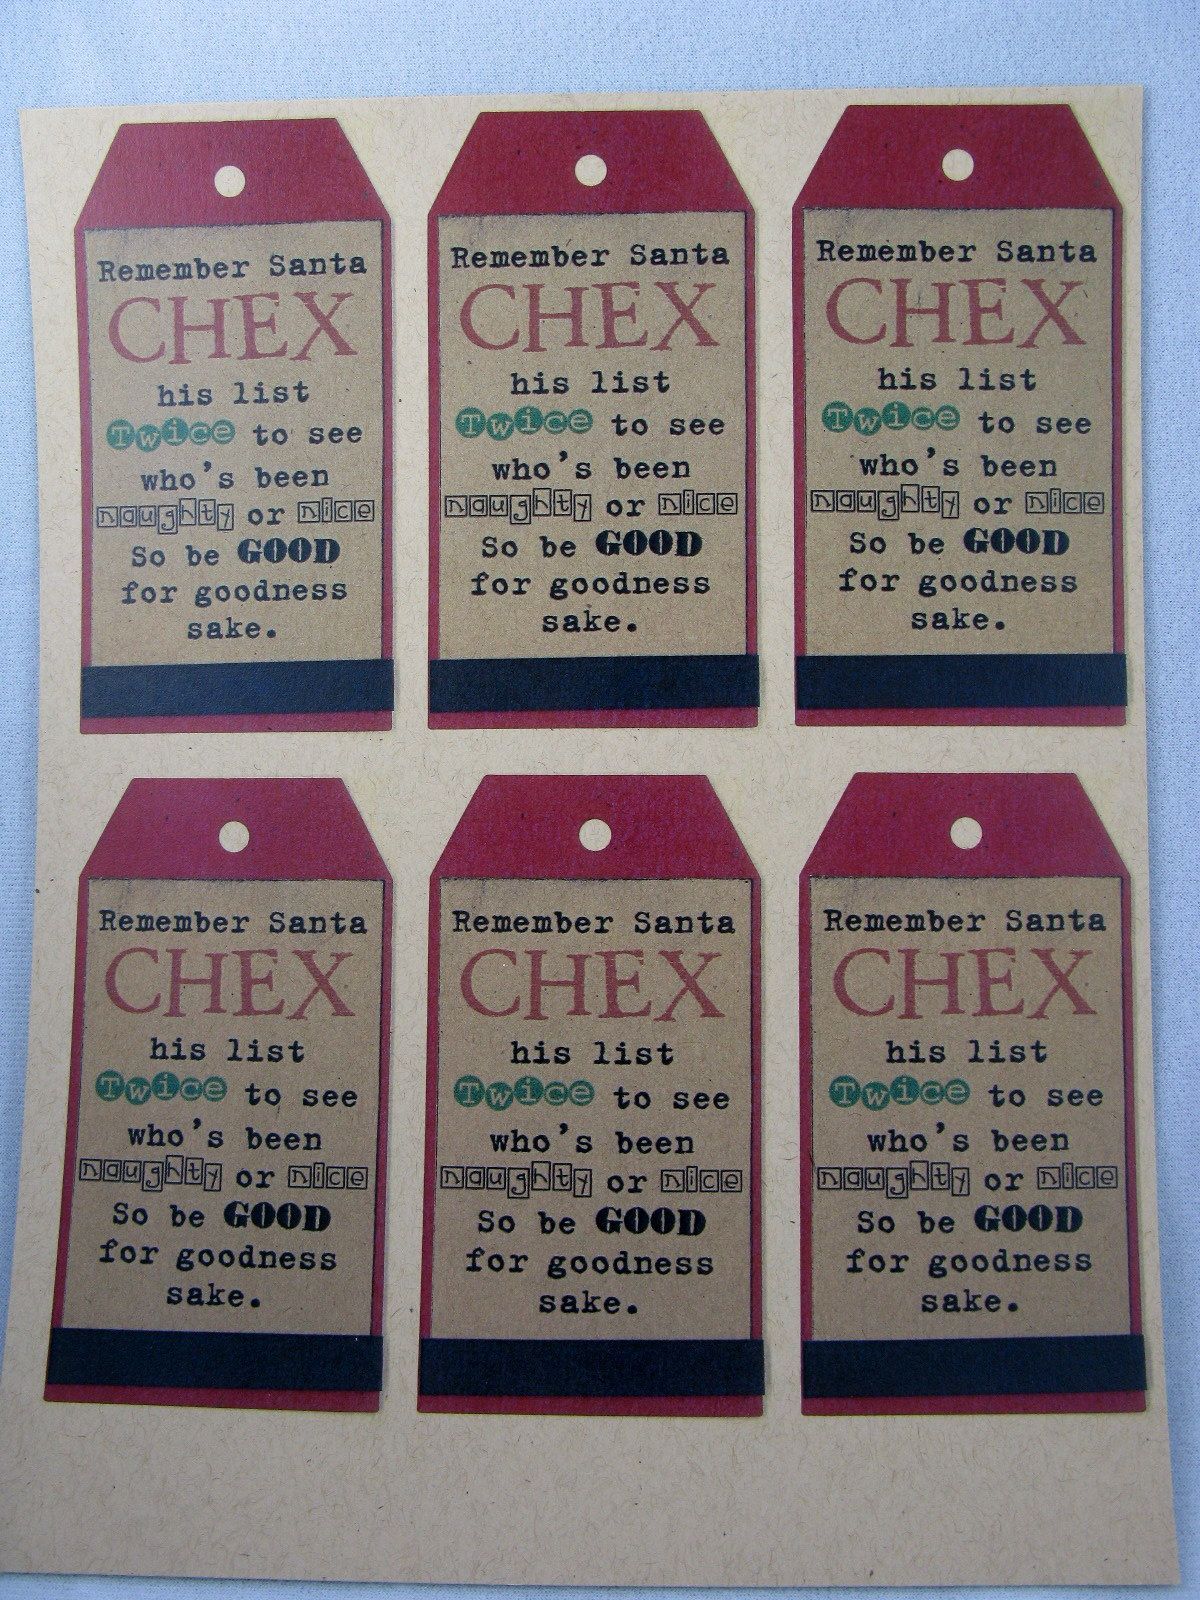 This Tag Reads, Remember Santa Chex His List Twice To